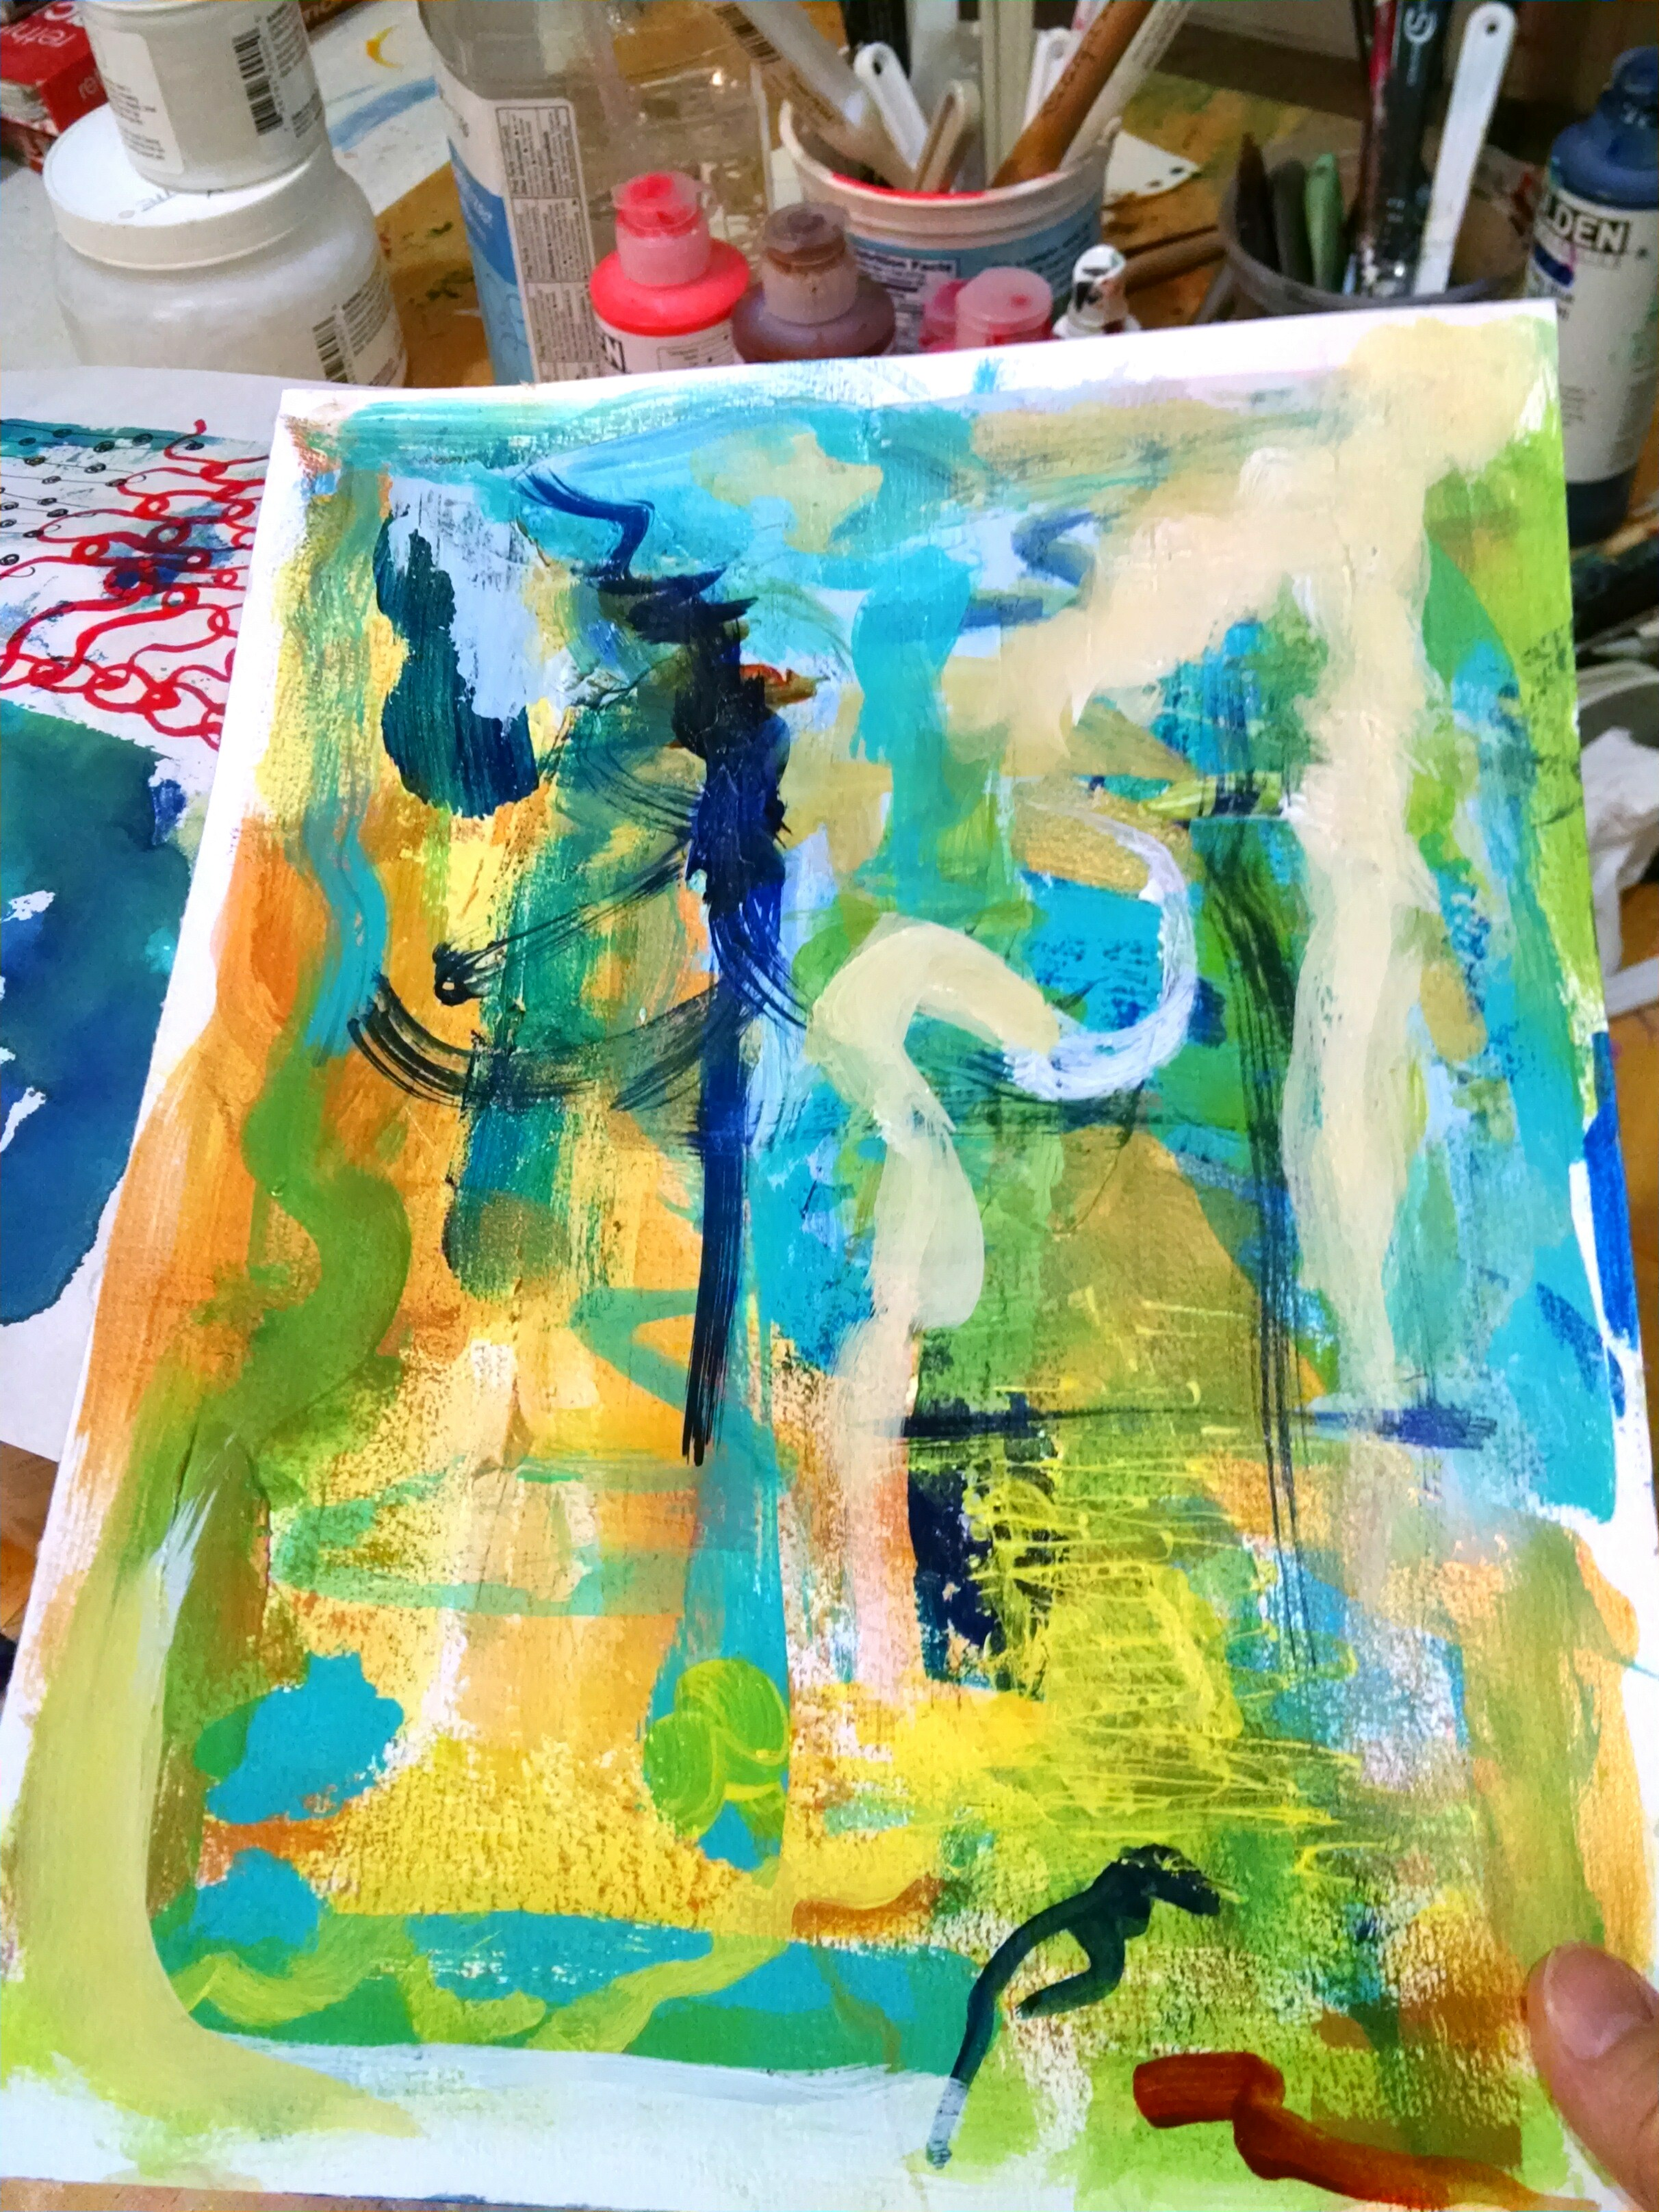 ©Christine Sauer, During painting sessions I always offload the leftover paint on my brushes and tools from the main project unto additional surfaces such as paper, raw canvas, and fabric.  This often yields interesting materials for collage or sometimes they become artworks on their own.